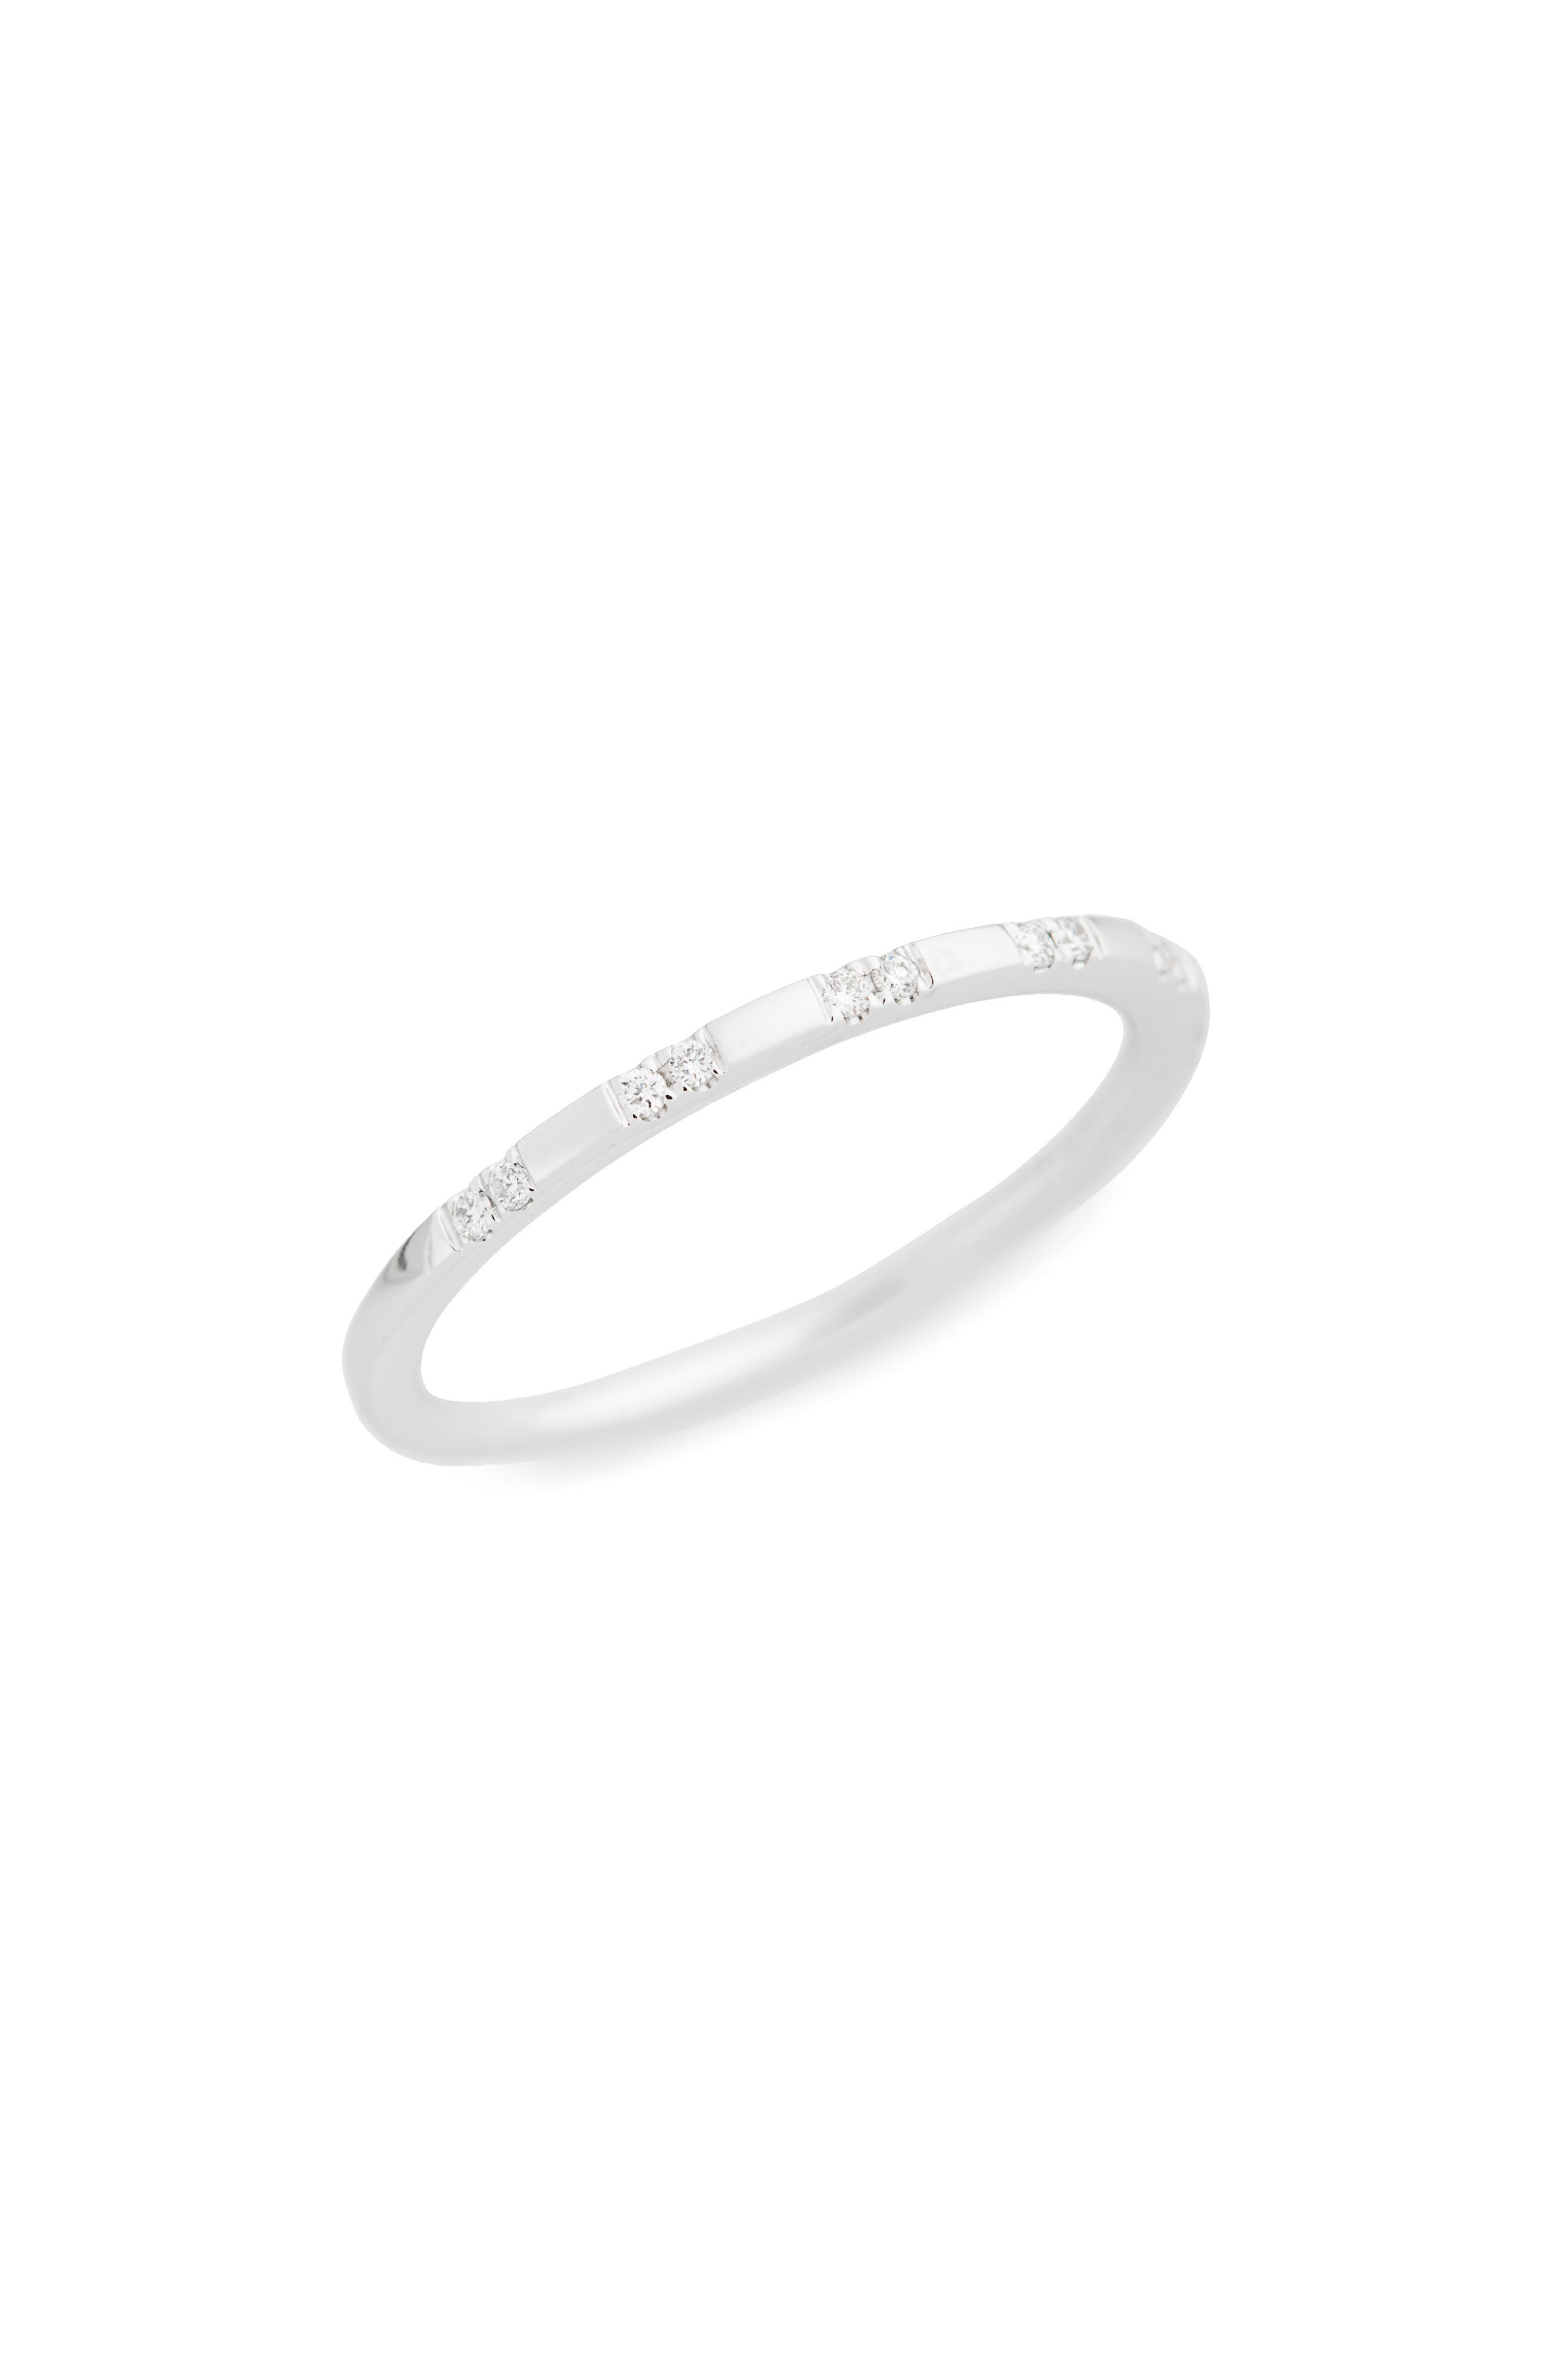 Prism Medium Stackable Diamond Ring,                         Main,                         color, White Gold